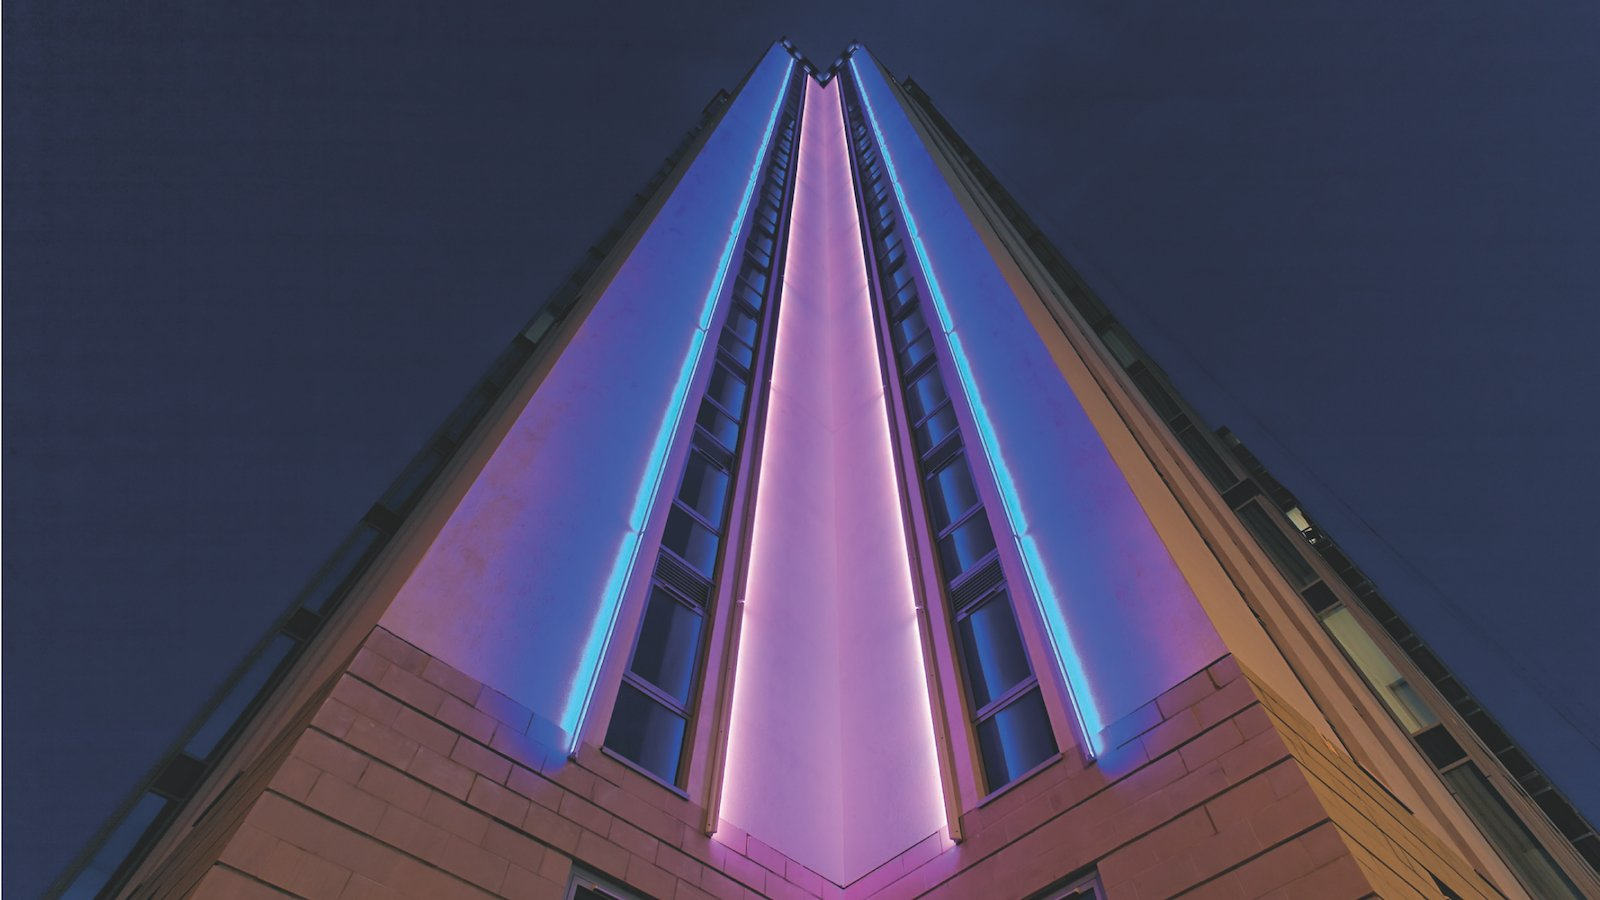 njo led lighting on facade of Orion Building